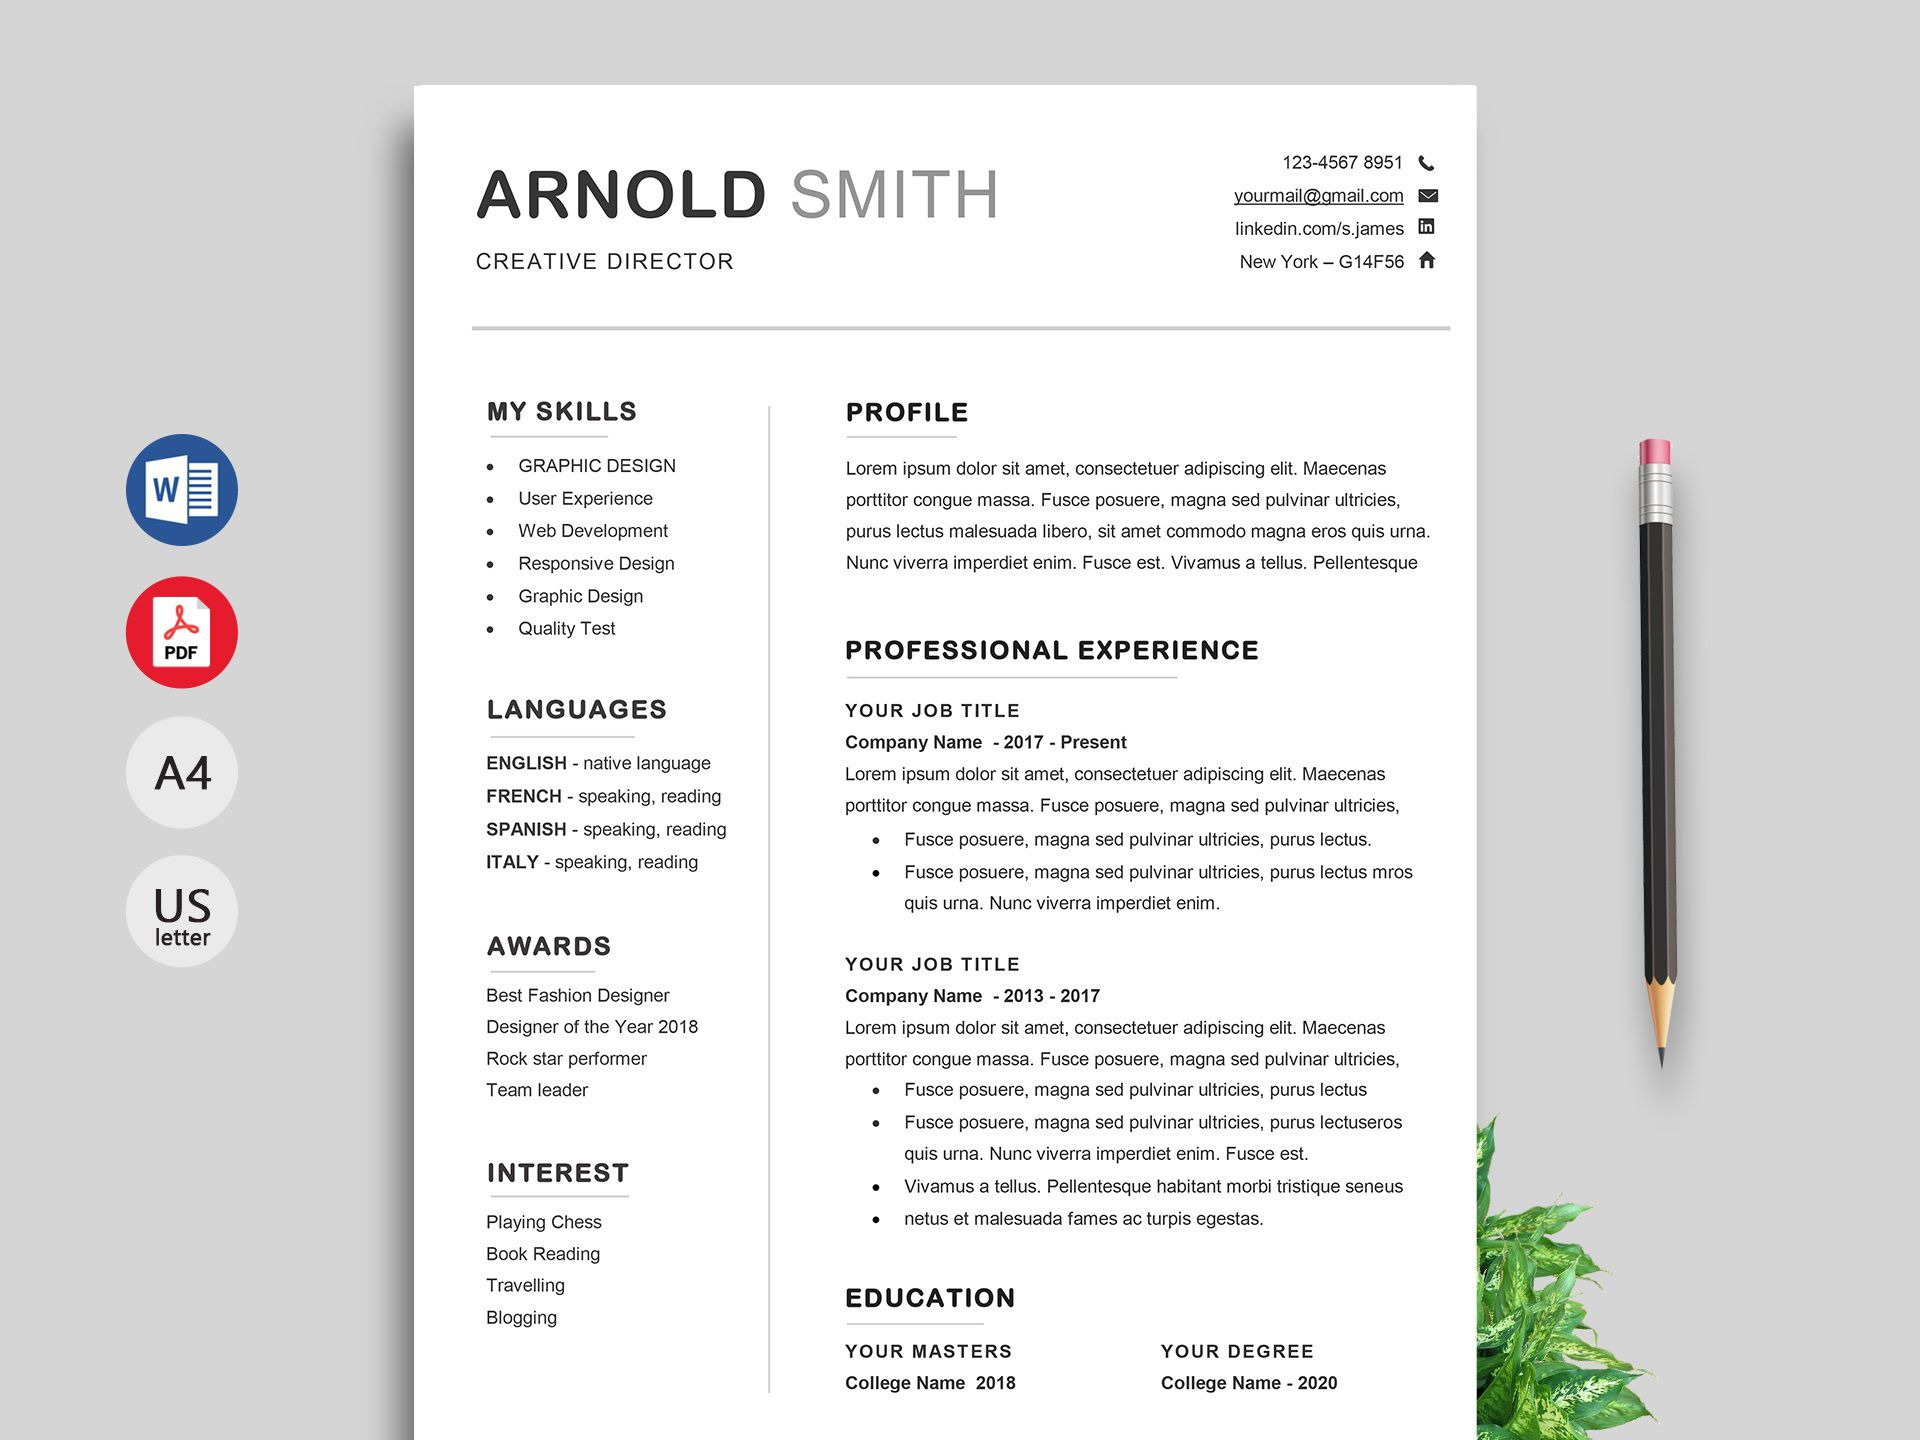 001 Magnificent Resume Template Free Word Download High Definition  Cv With Photo Malaysia AustraliaFull